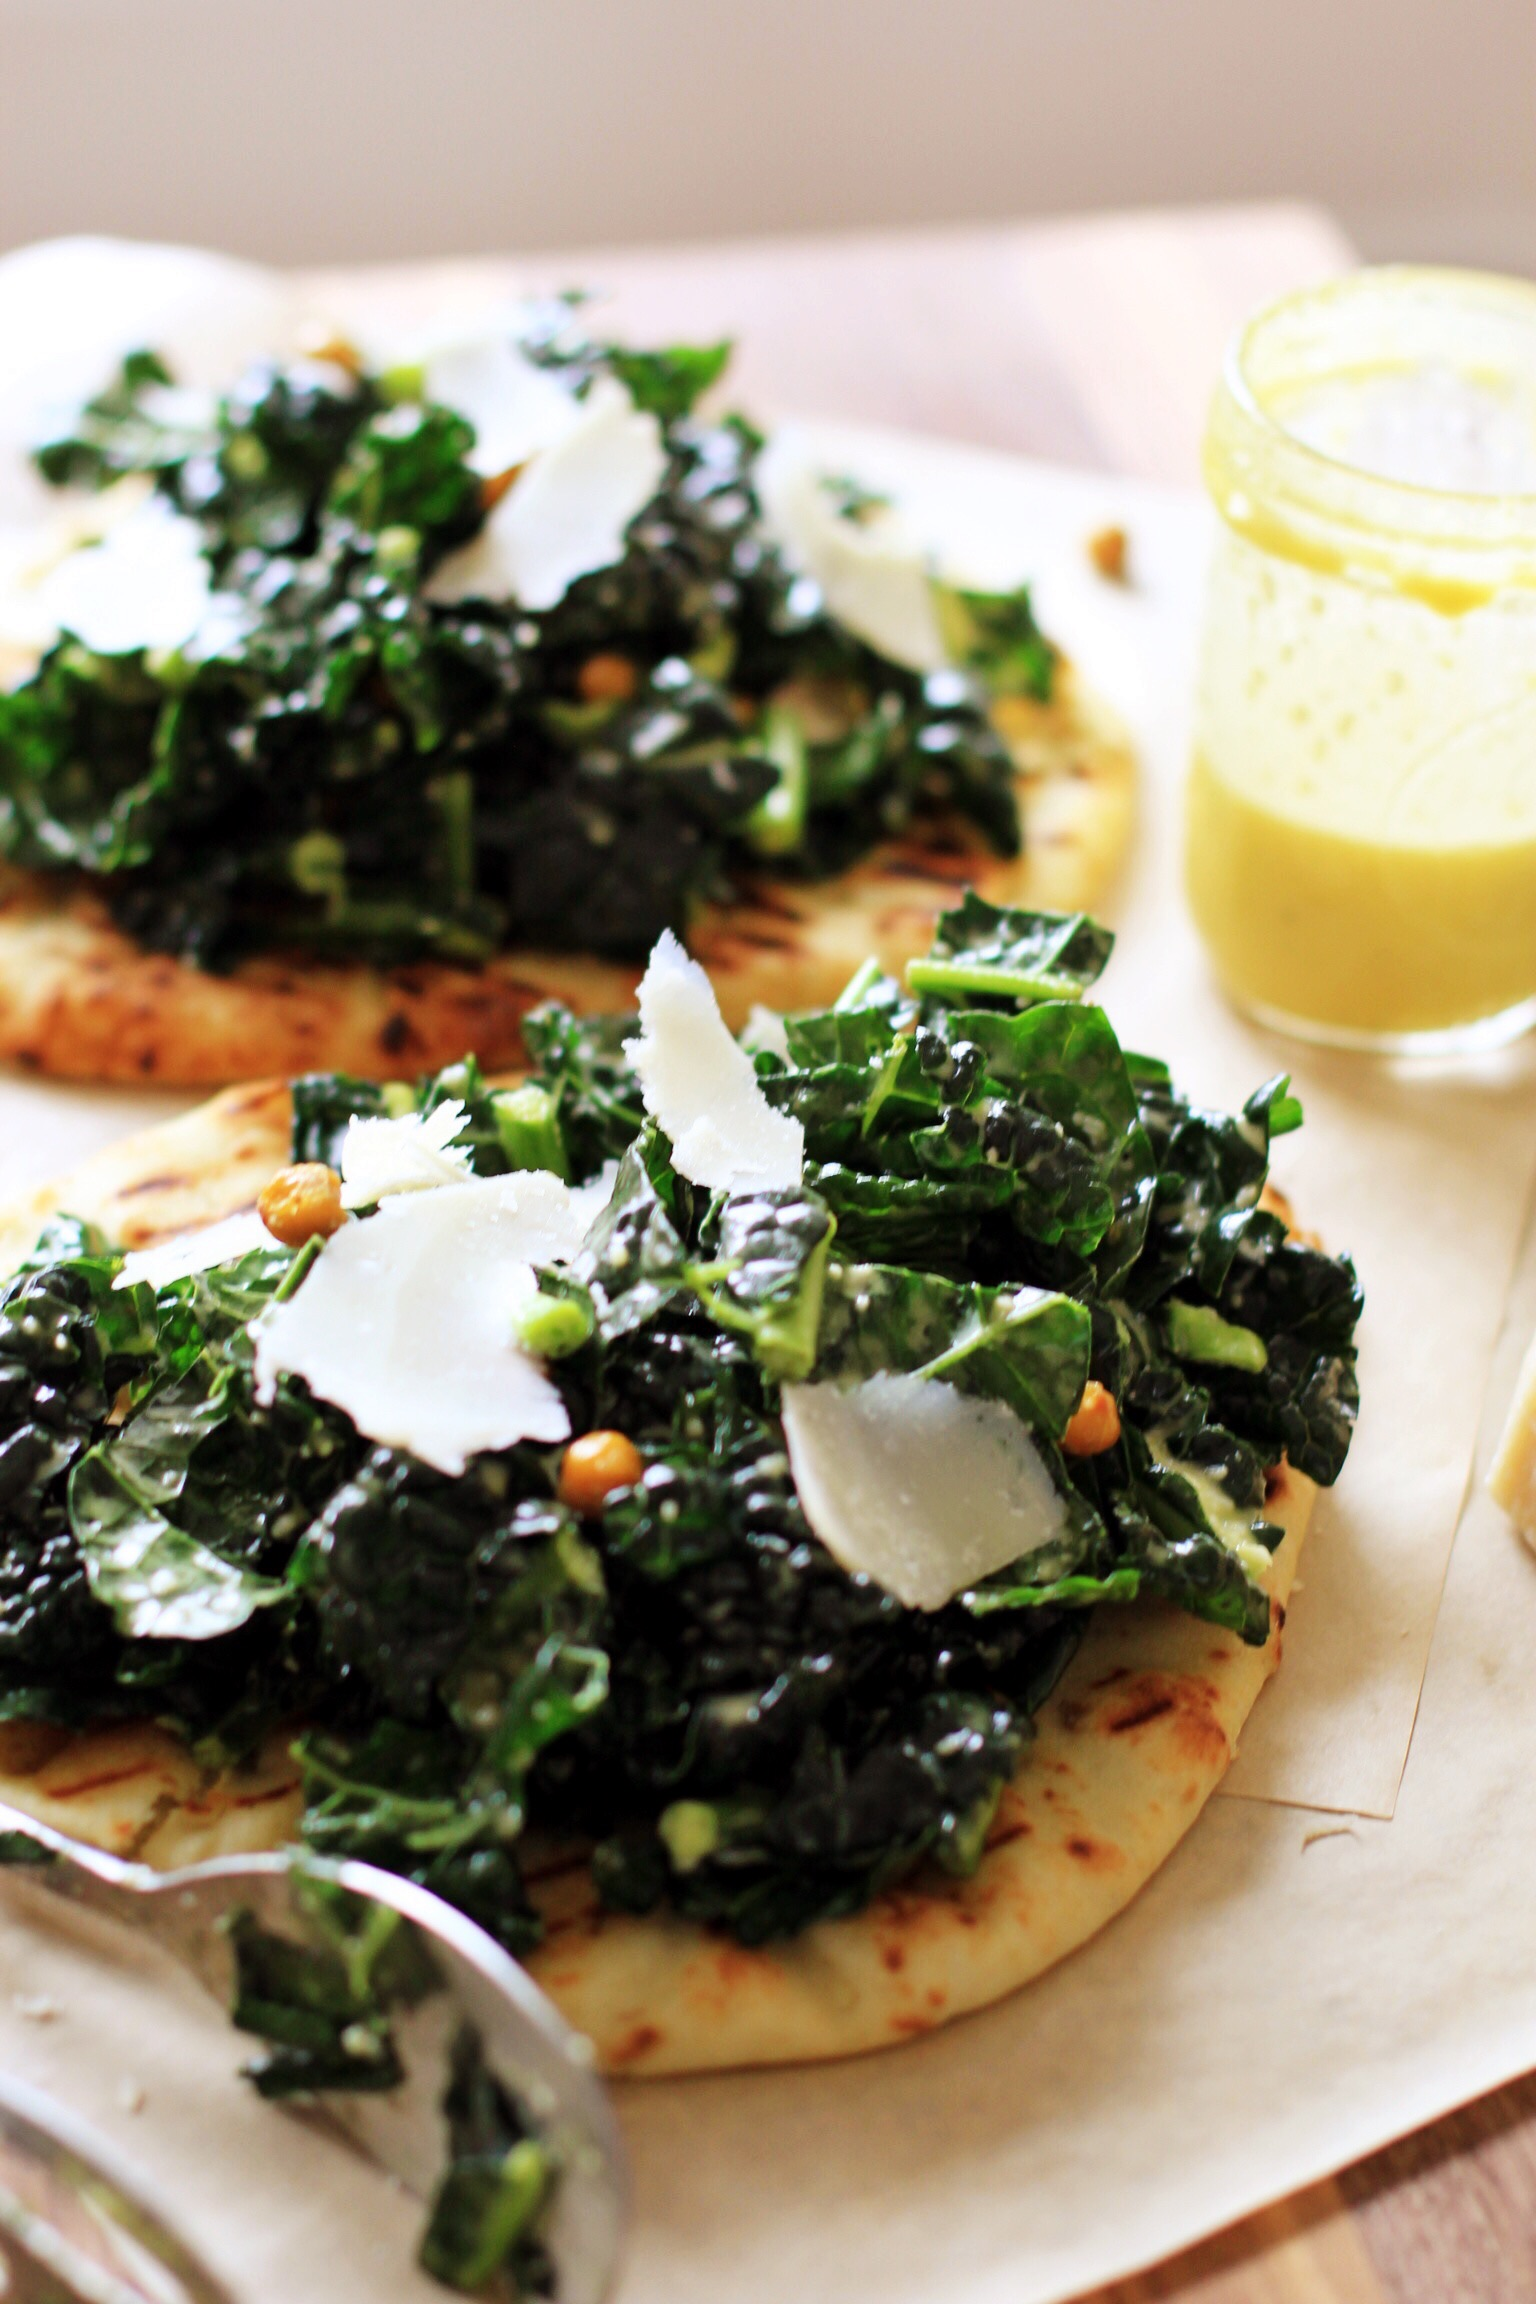 Naan flatbread with hummus and Caesar drenched kale - The Pastiche